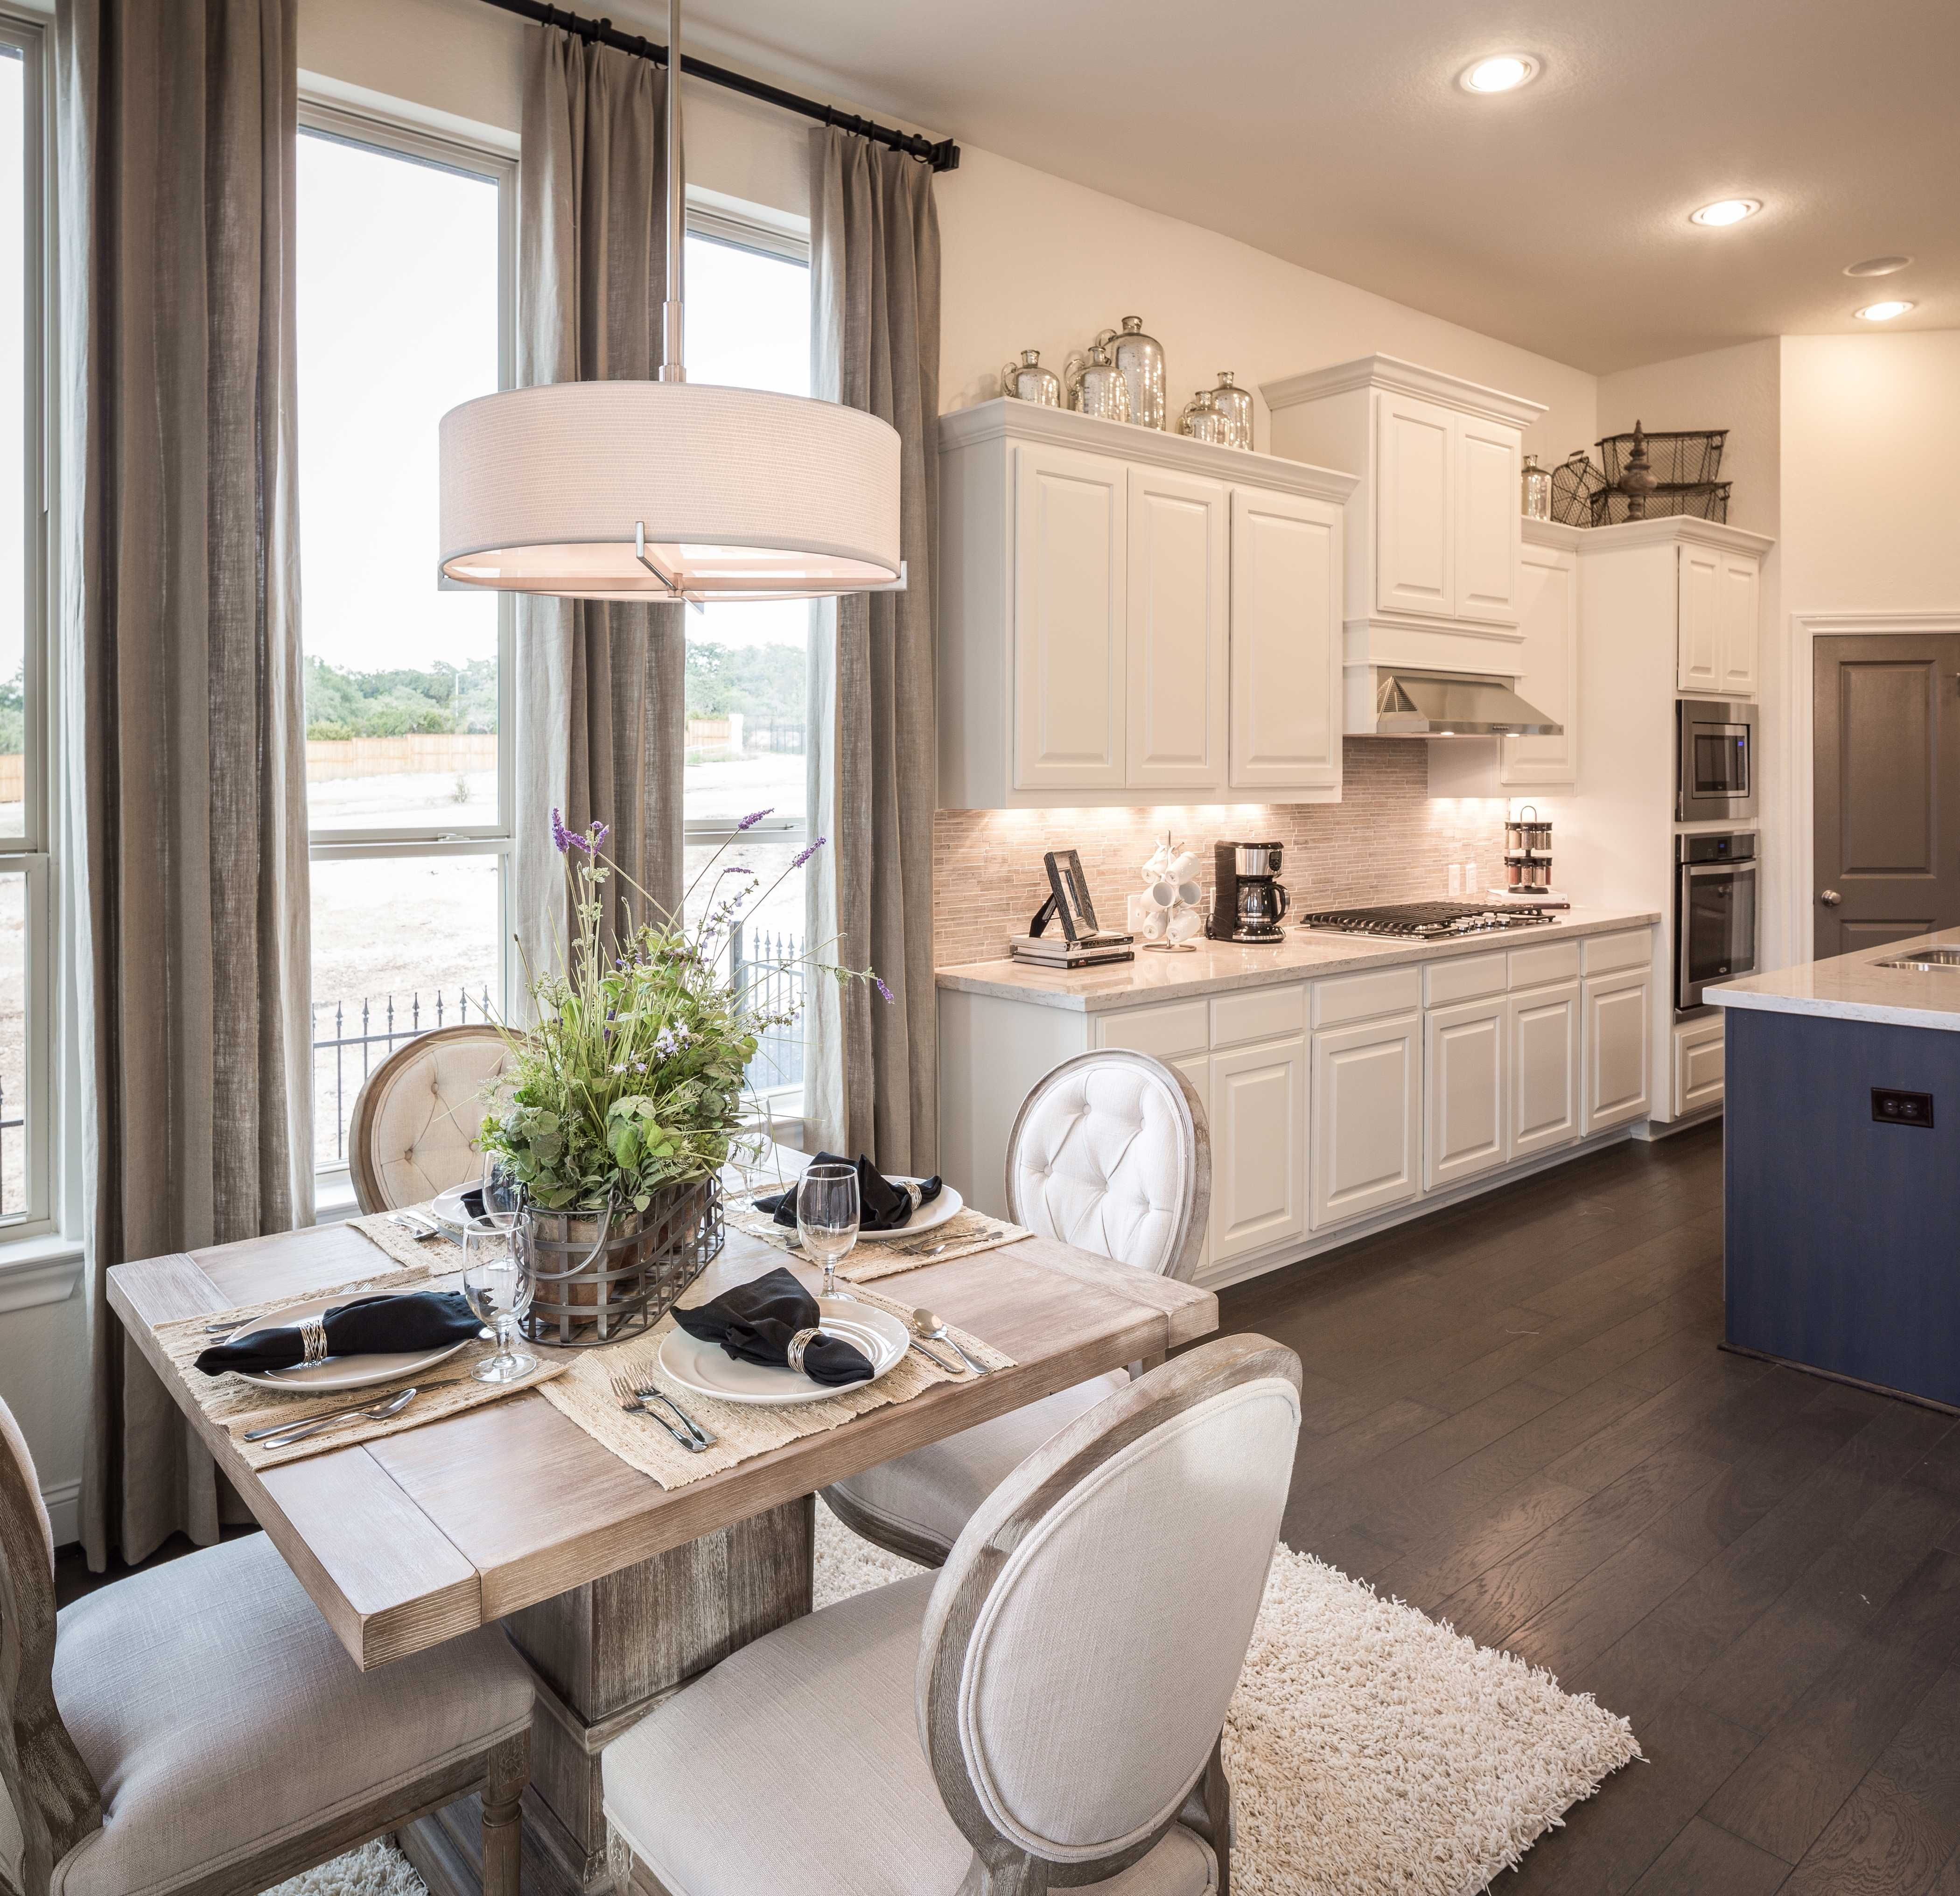 New Home From Highland Homes Model Home Decorating Home House Interior